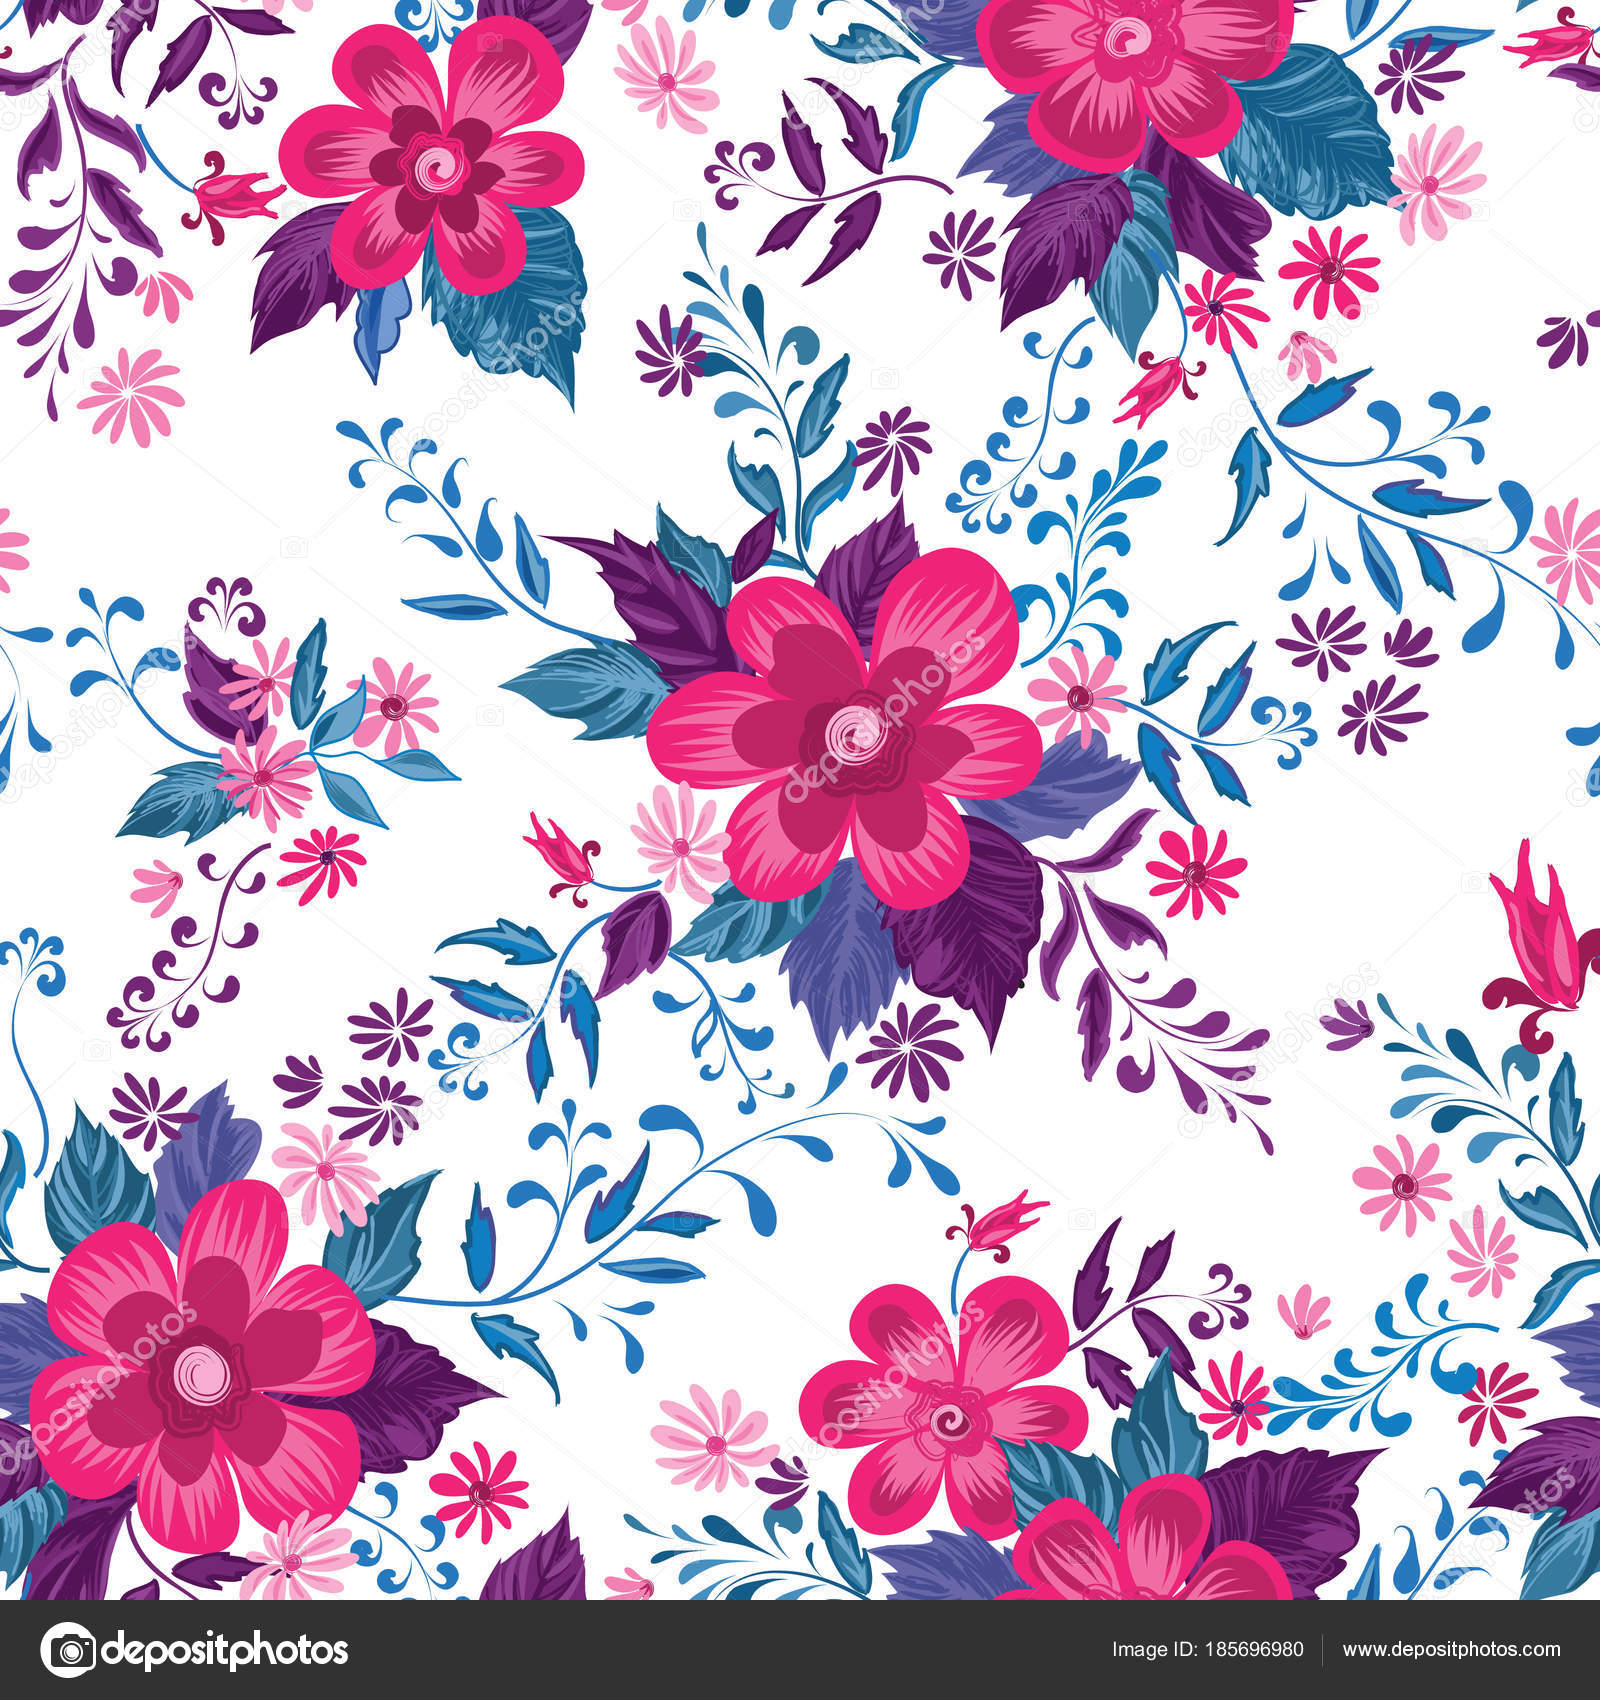 Floral Seamless Pattern Flower Background Flourish Ornamental Summer Wallpaper Flowers Stock Vector C Yokodesign